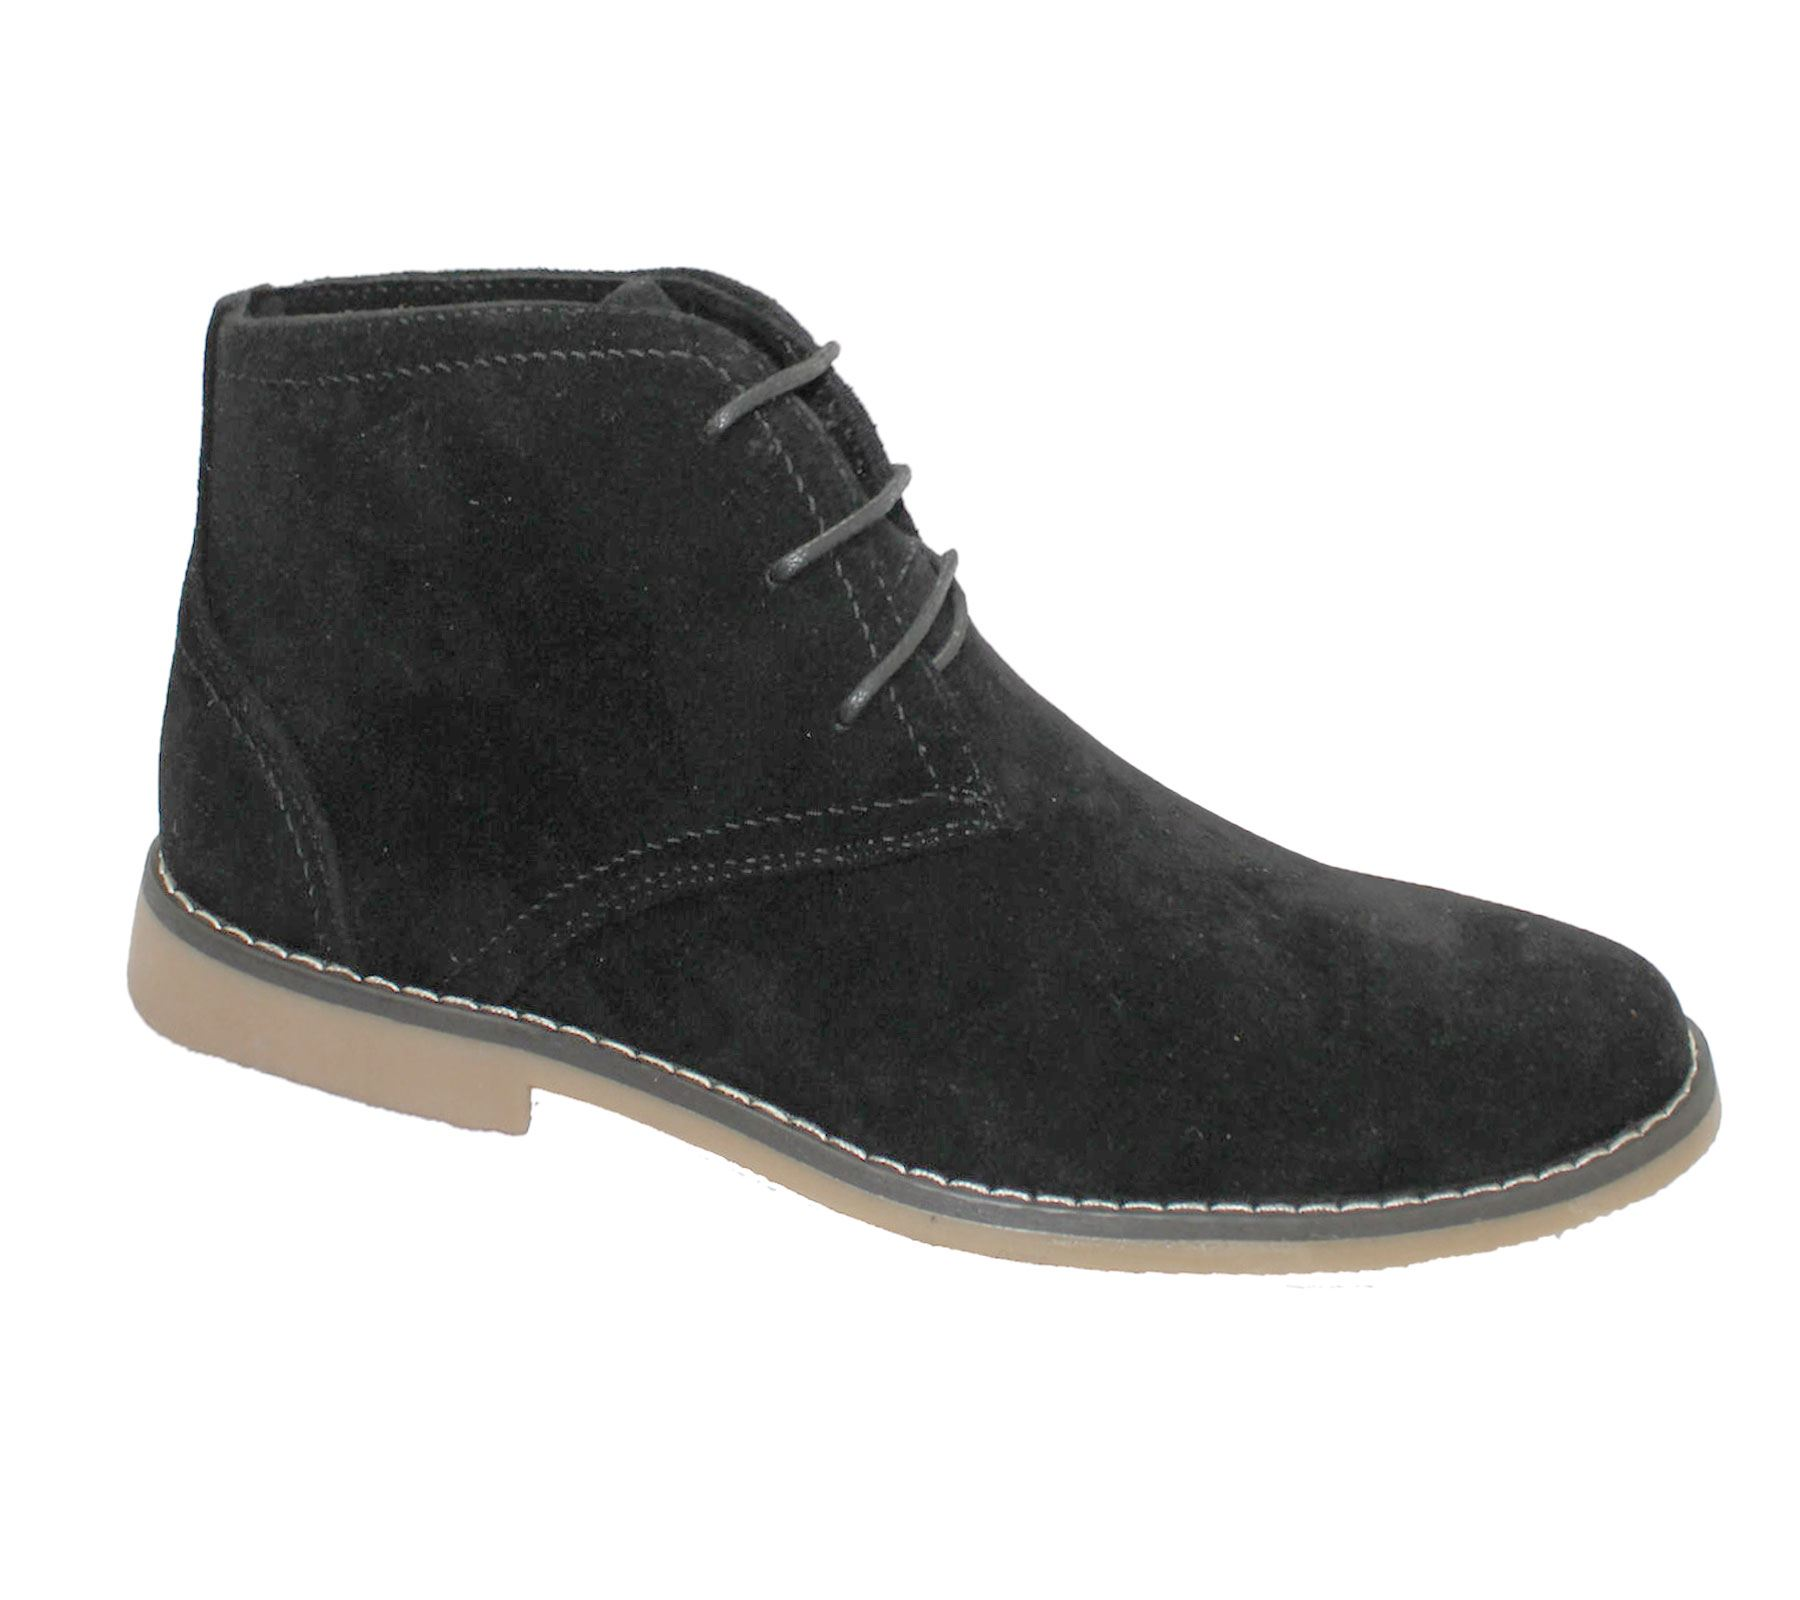 mens suede desert boots winter ankle high top classic